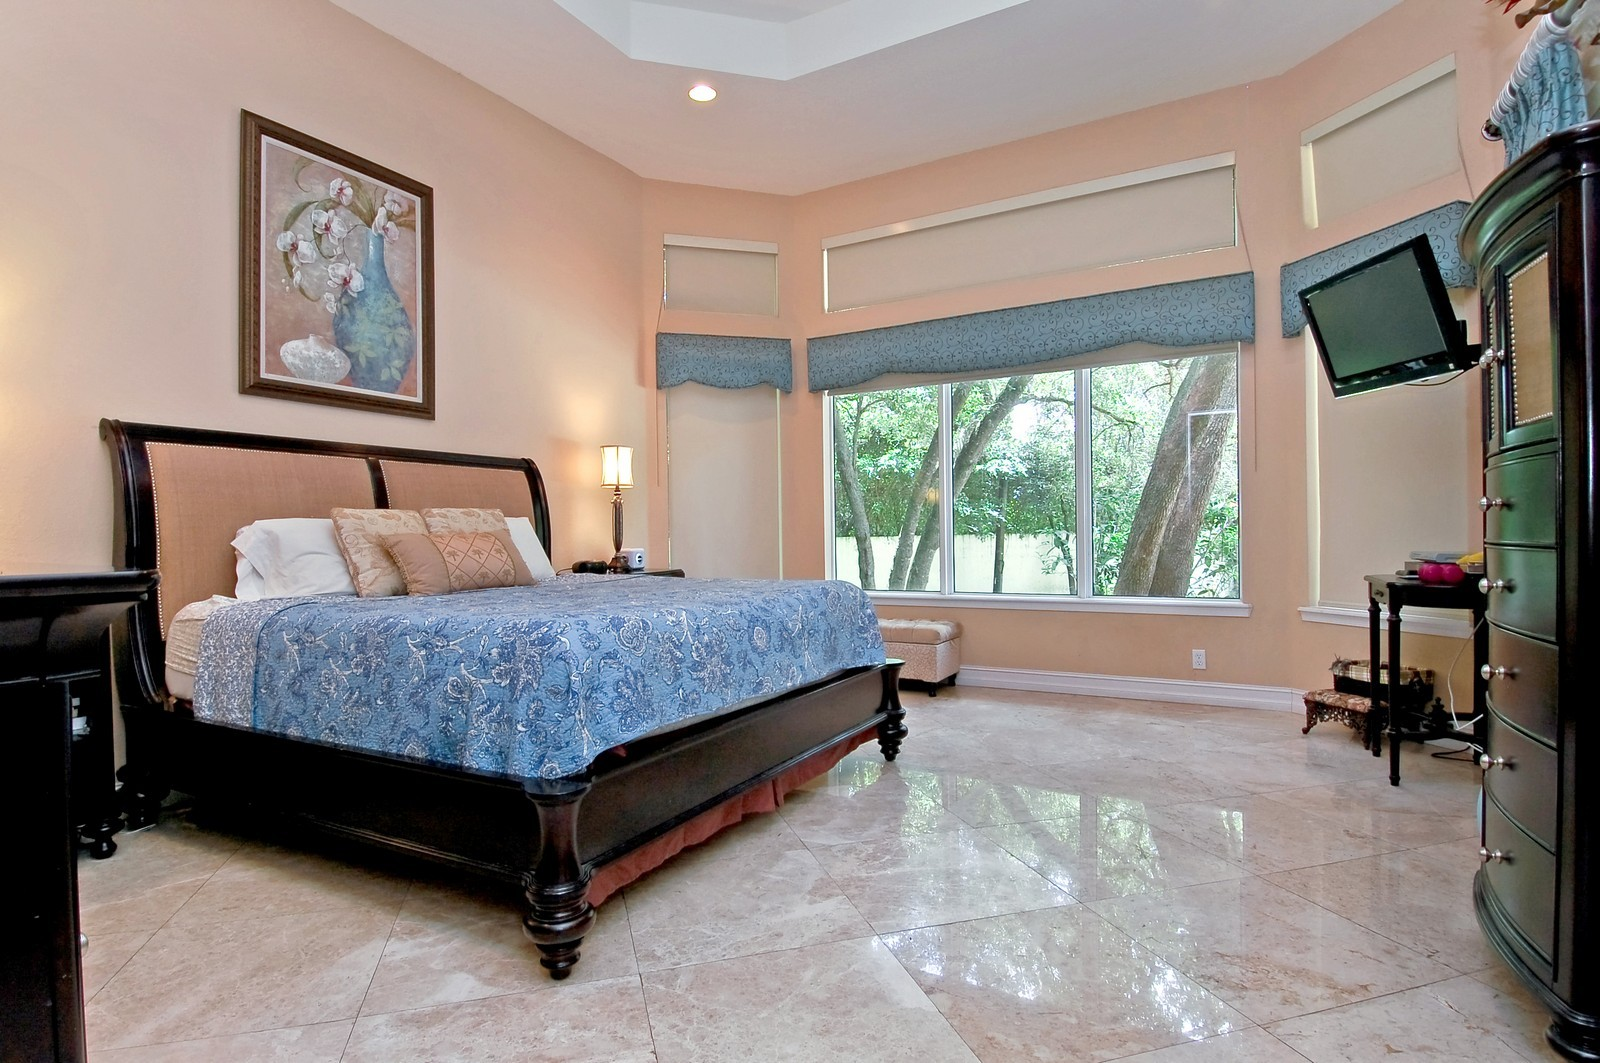 Real Estate Photography - 5400 Woodlanden Ln, Ft Lauderdale, FL, 33021 - Master Bedroom